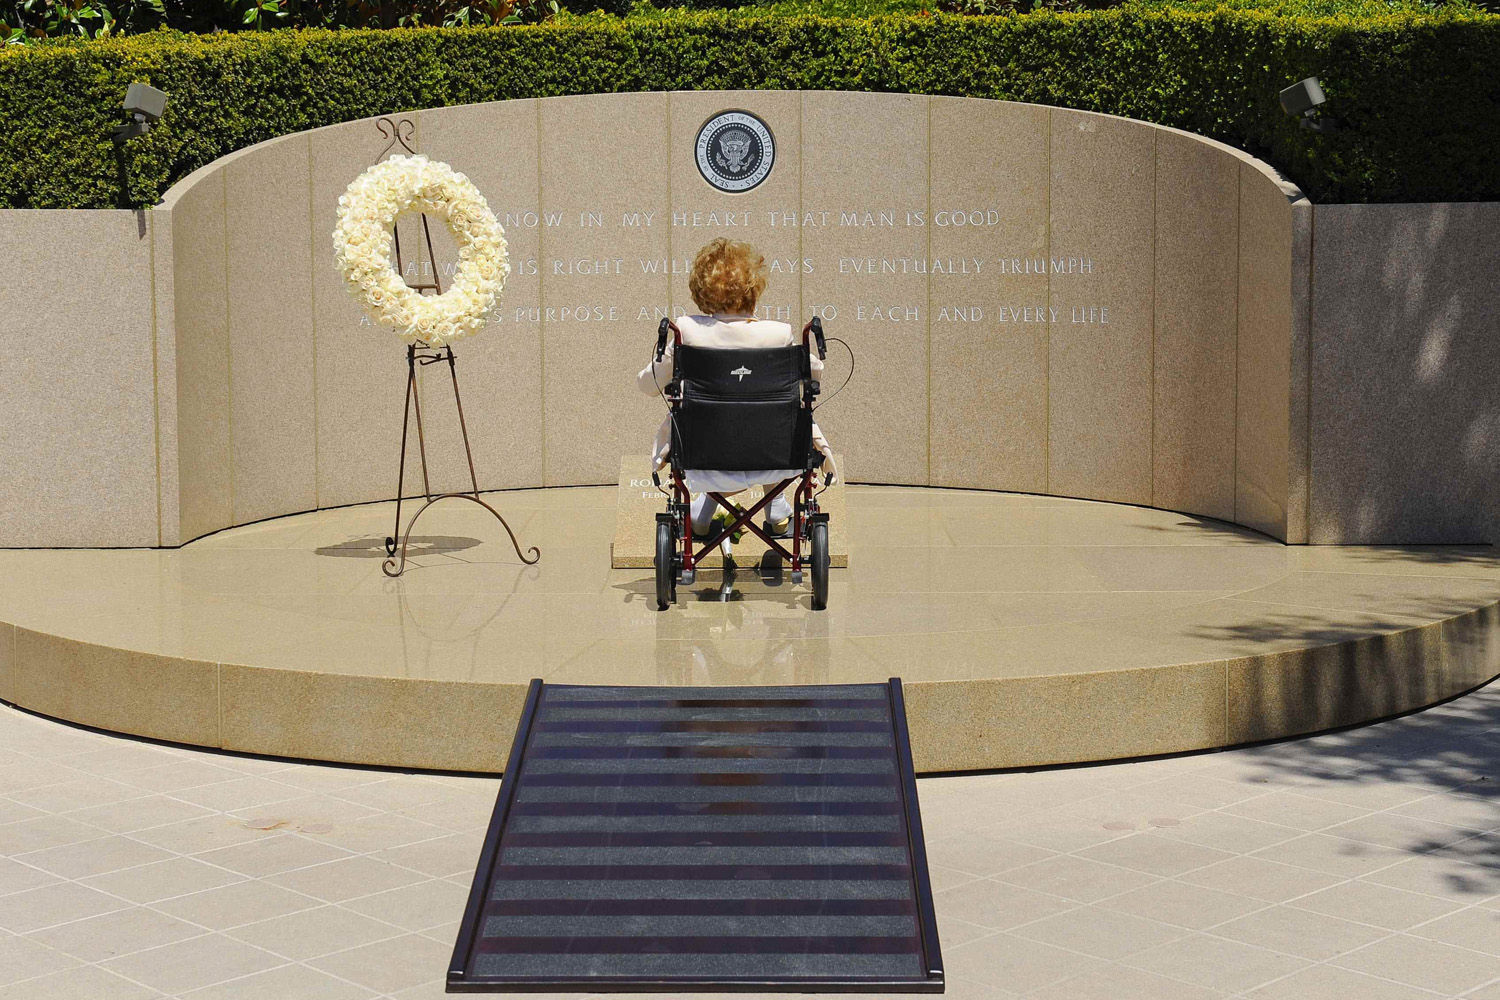 June 5, 2014. Former first lady of the United States Nancy Reagan visits the grave site of her husband, former United States President Ronald Wilson Reagan, at the Ronald Reagan Presidential Library on the 10th anniversary of his passing, in Simi Valley, California.